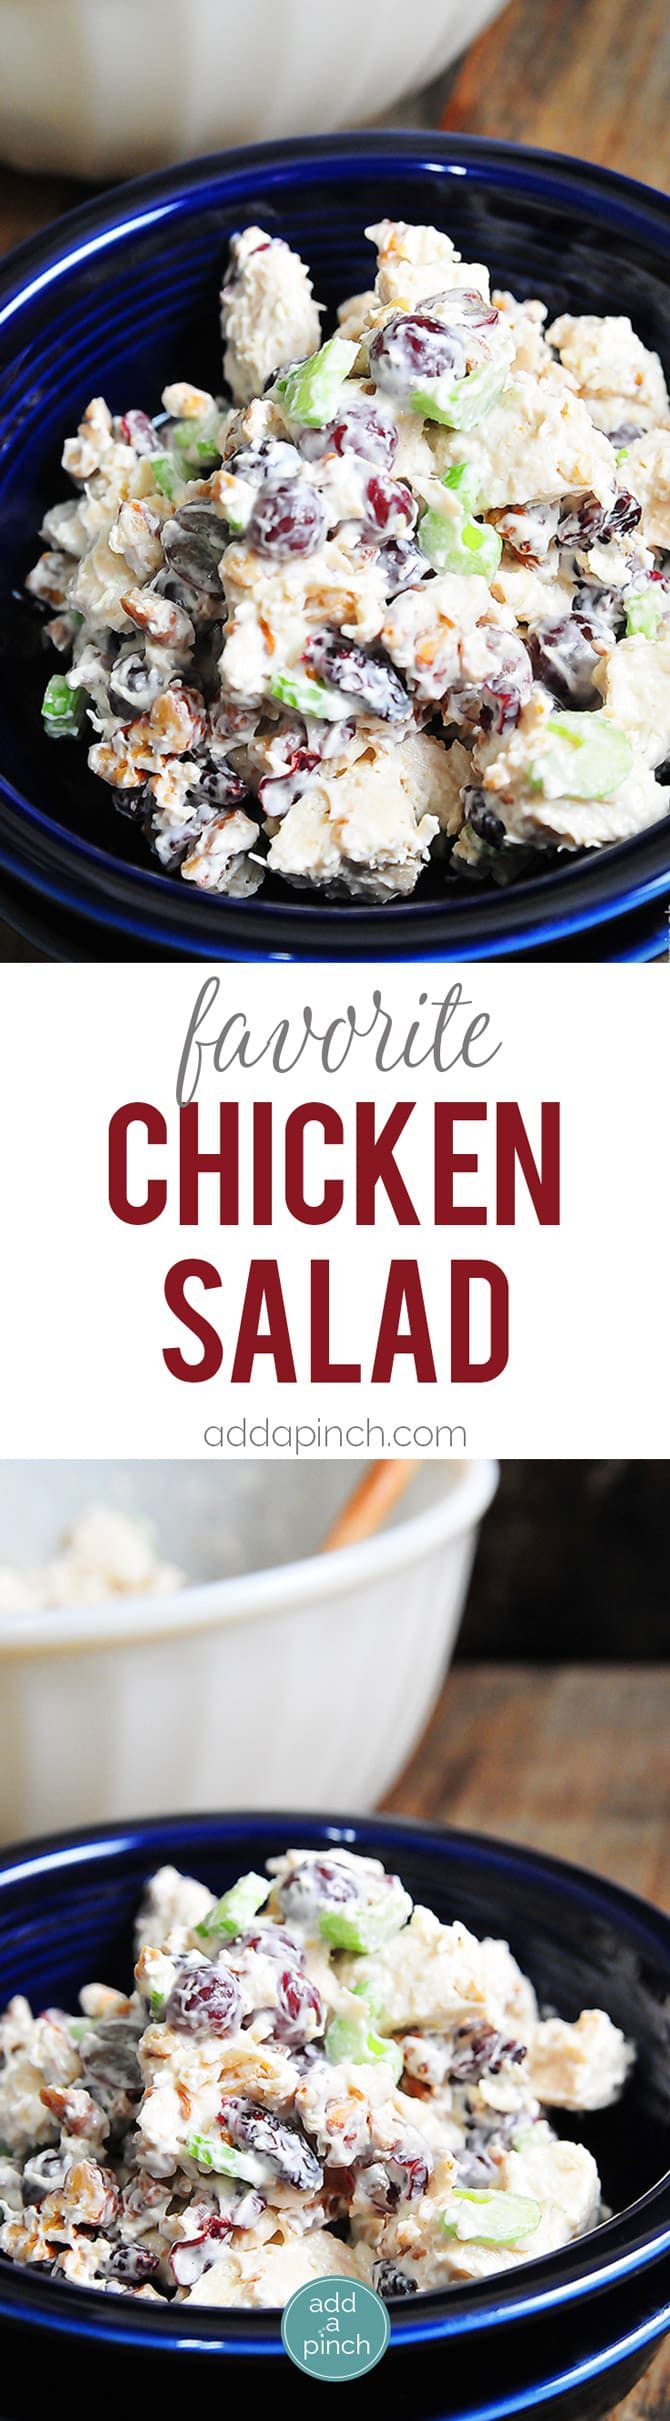 Chicken Salad With Grapes Recipes  Chicken Salad with Grapes Recipe Cooking